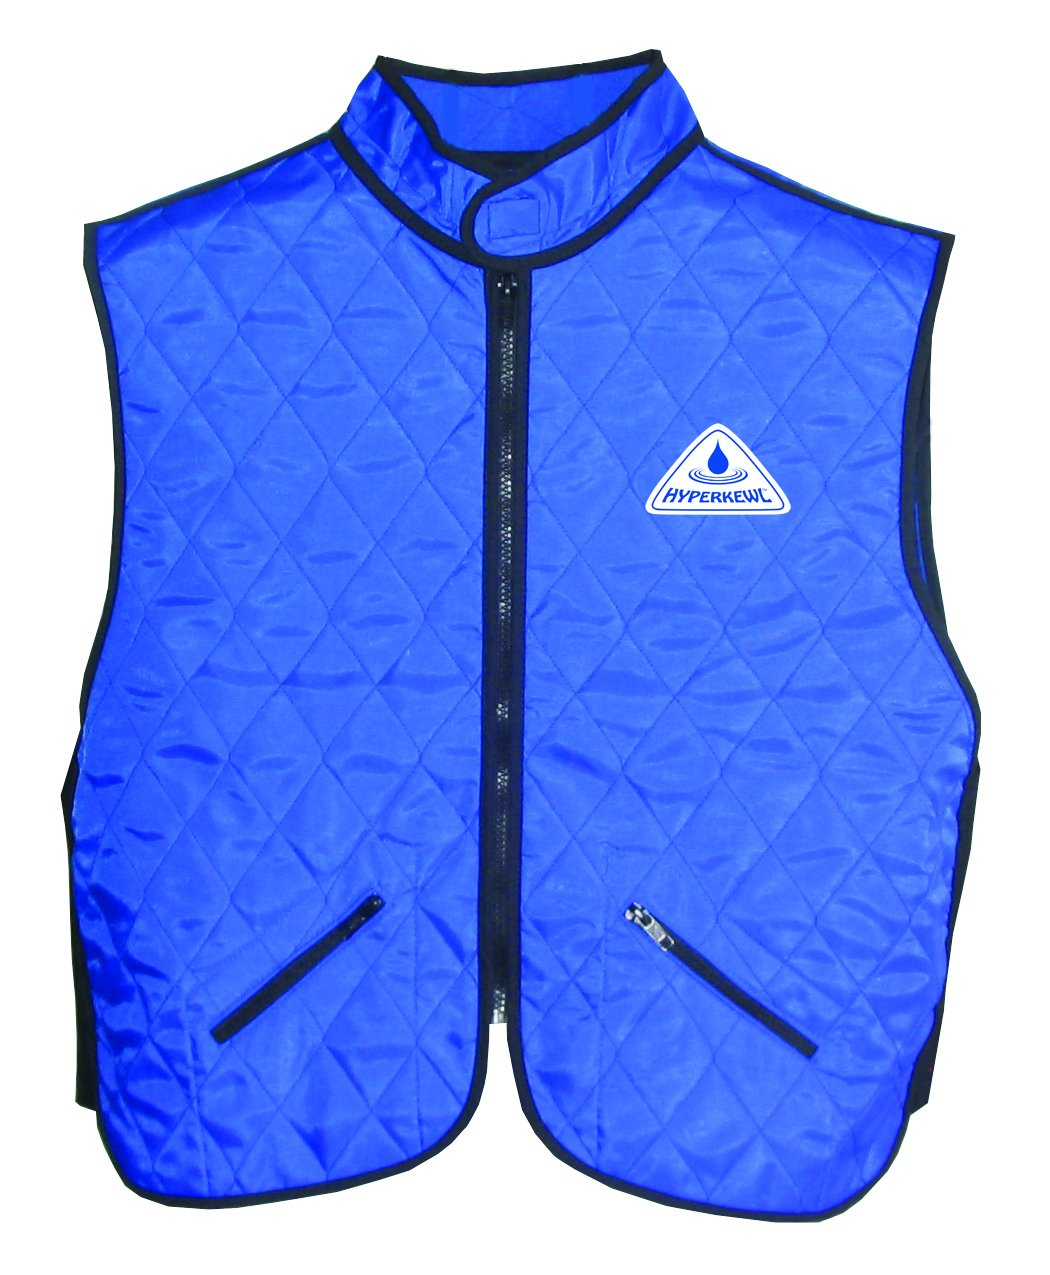 Best cooling vest reviews august analysis of the hype